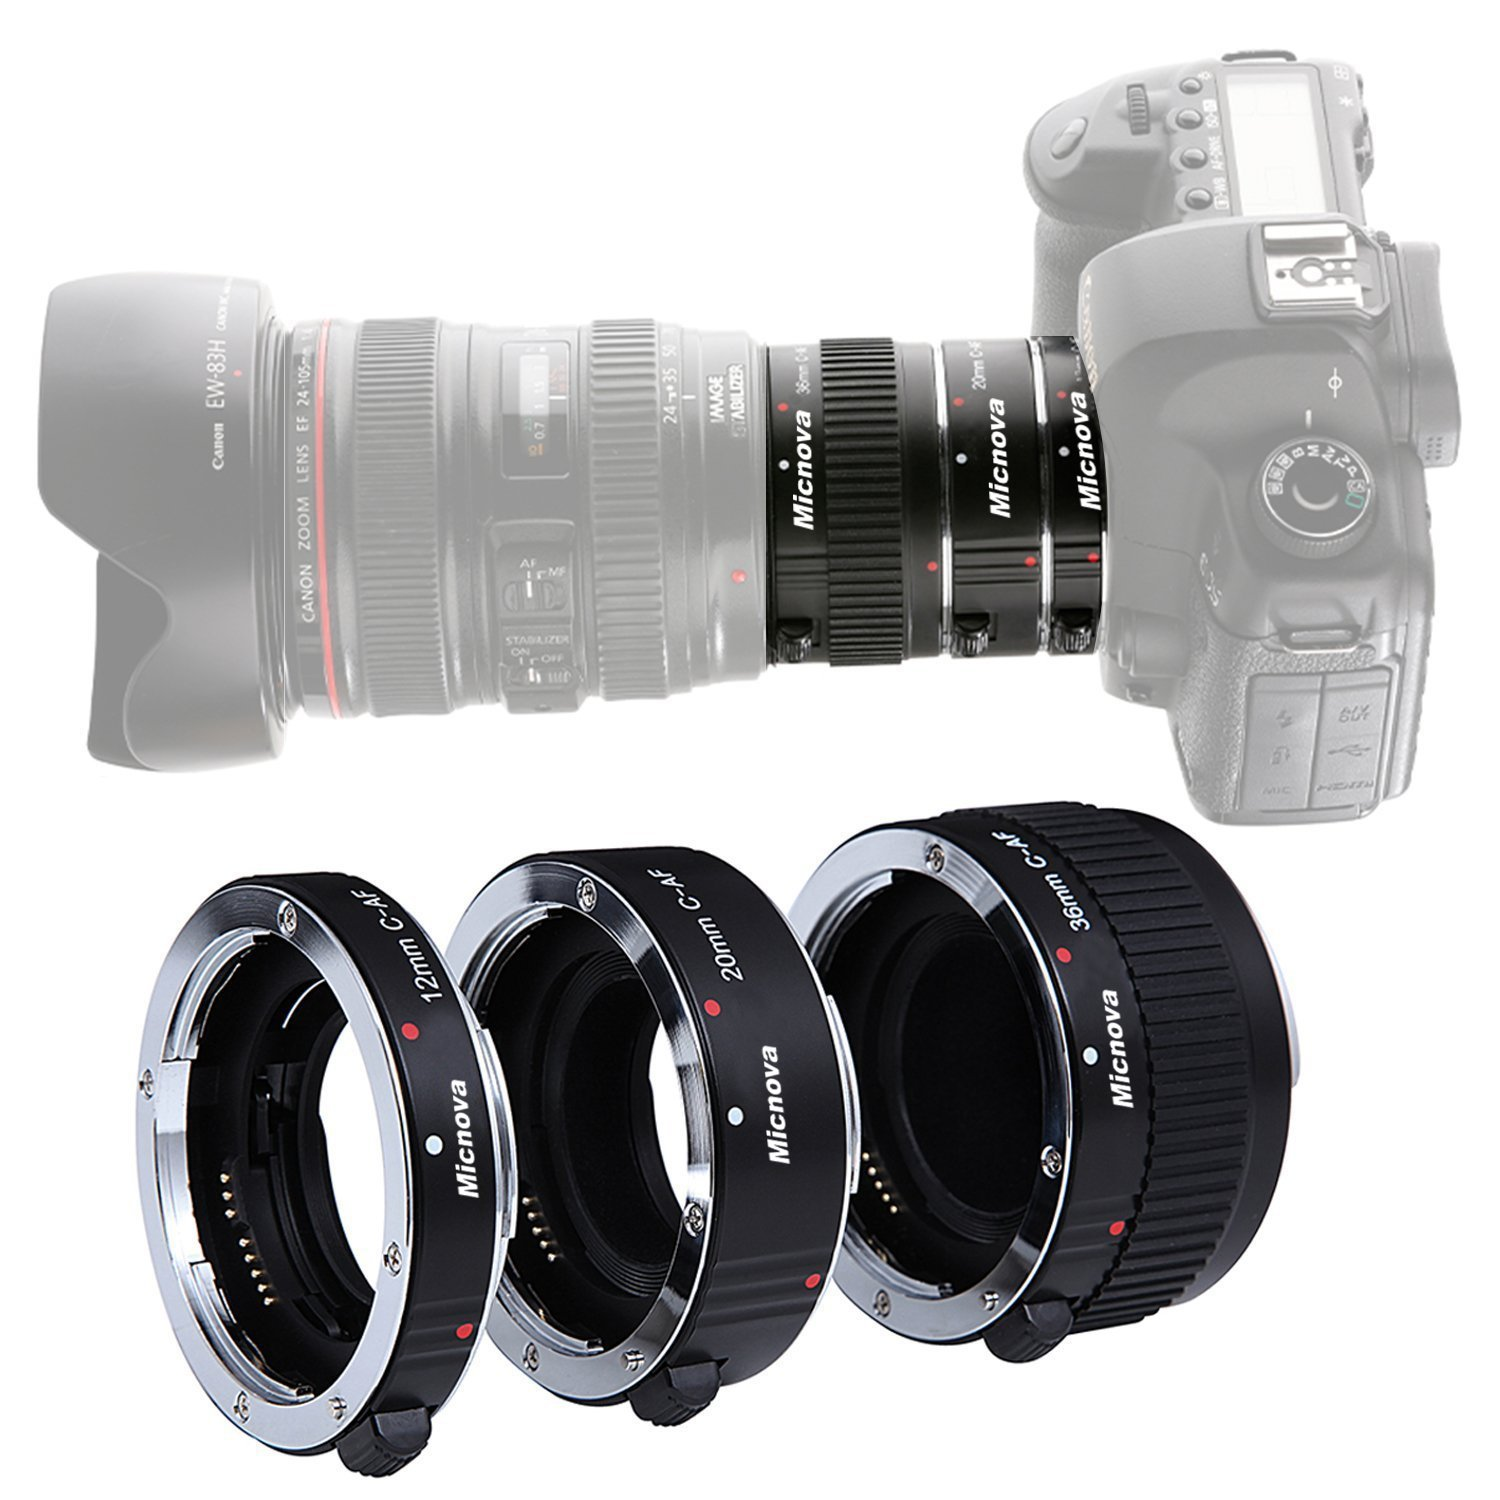 KOOKA KK-C68 Pro Auto Focus Macro Extension Tube Set for Canon EOS EF & EF-S Mount 5D2 5D3 6D 650D 750D With 12mm 20mm and 36mm Tubes by Micnova